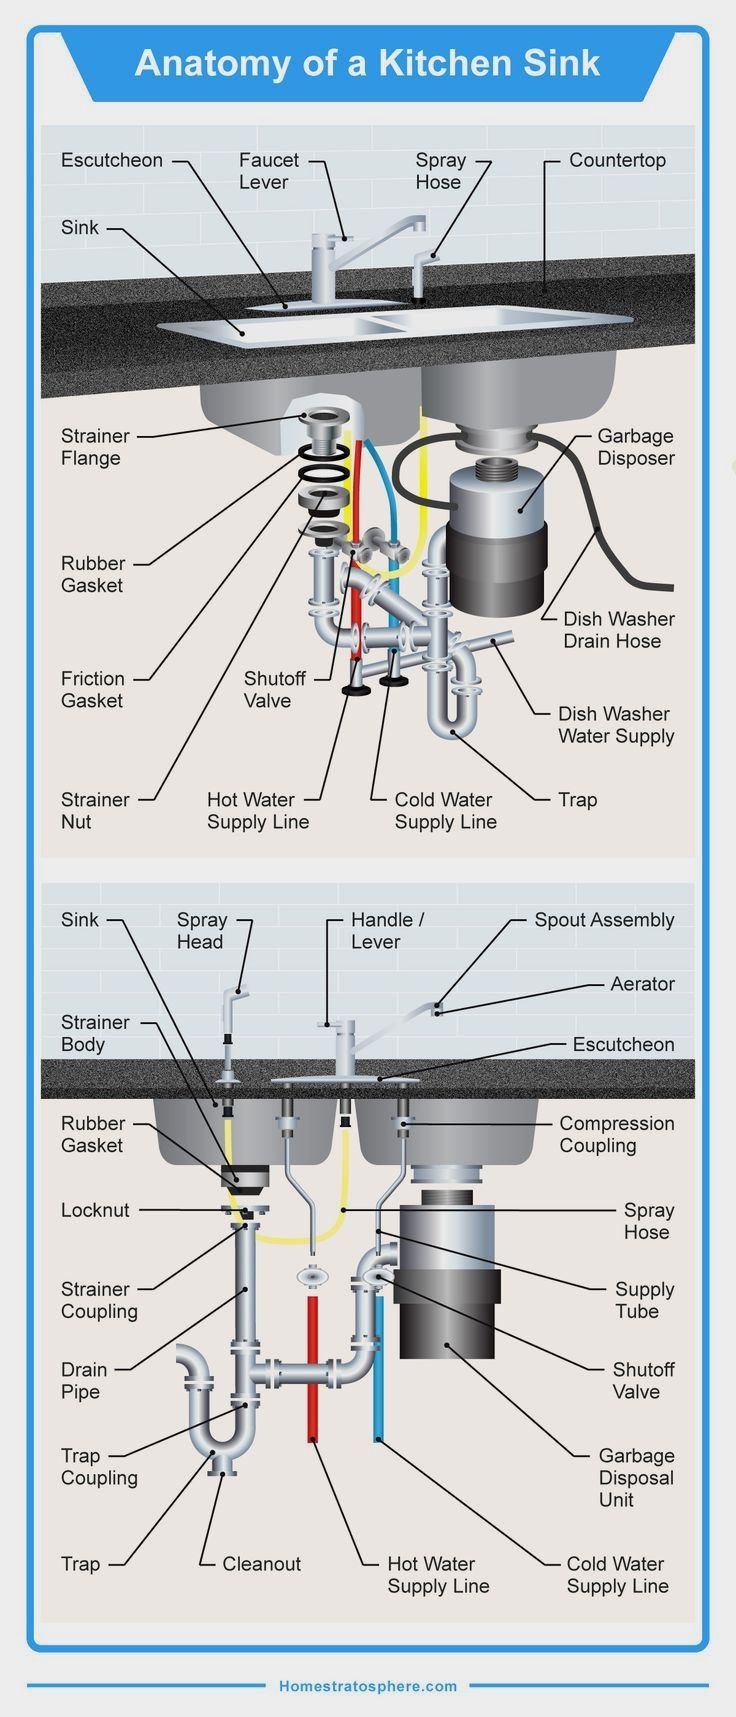 small resolution of detailed diagram illustrating all the 35 different parts of a kitchen sink including hot and cold water lines dishwasher wa plumbing pipe furniture in